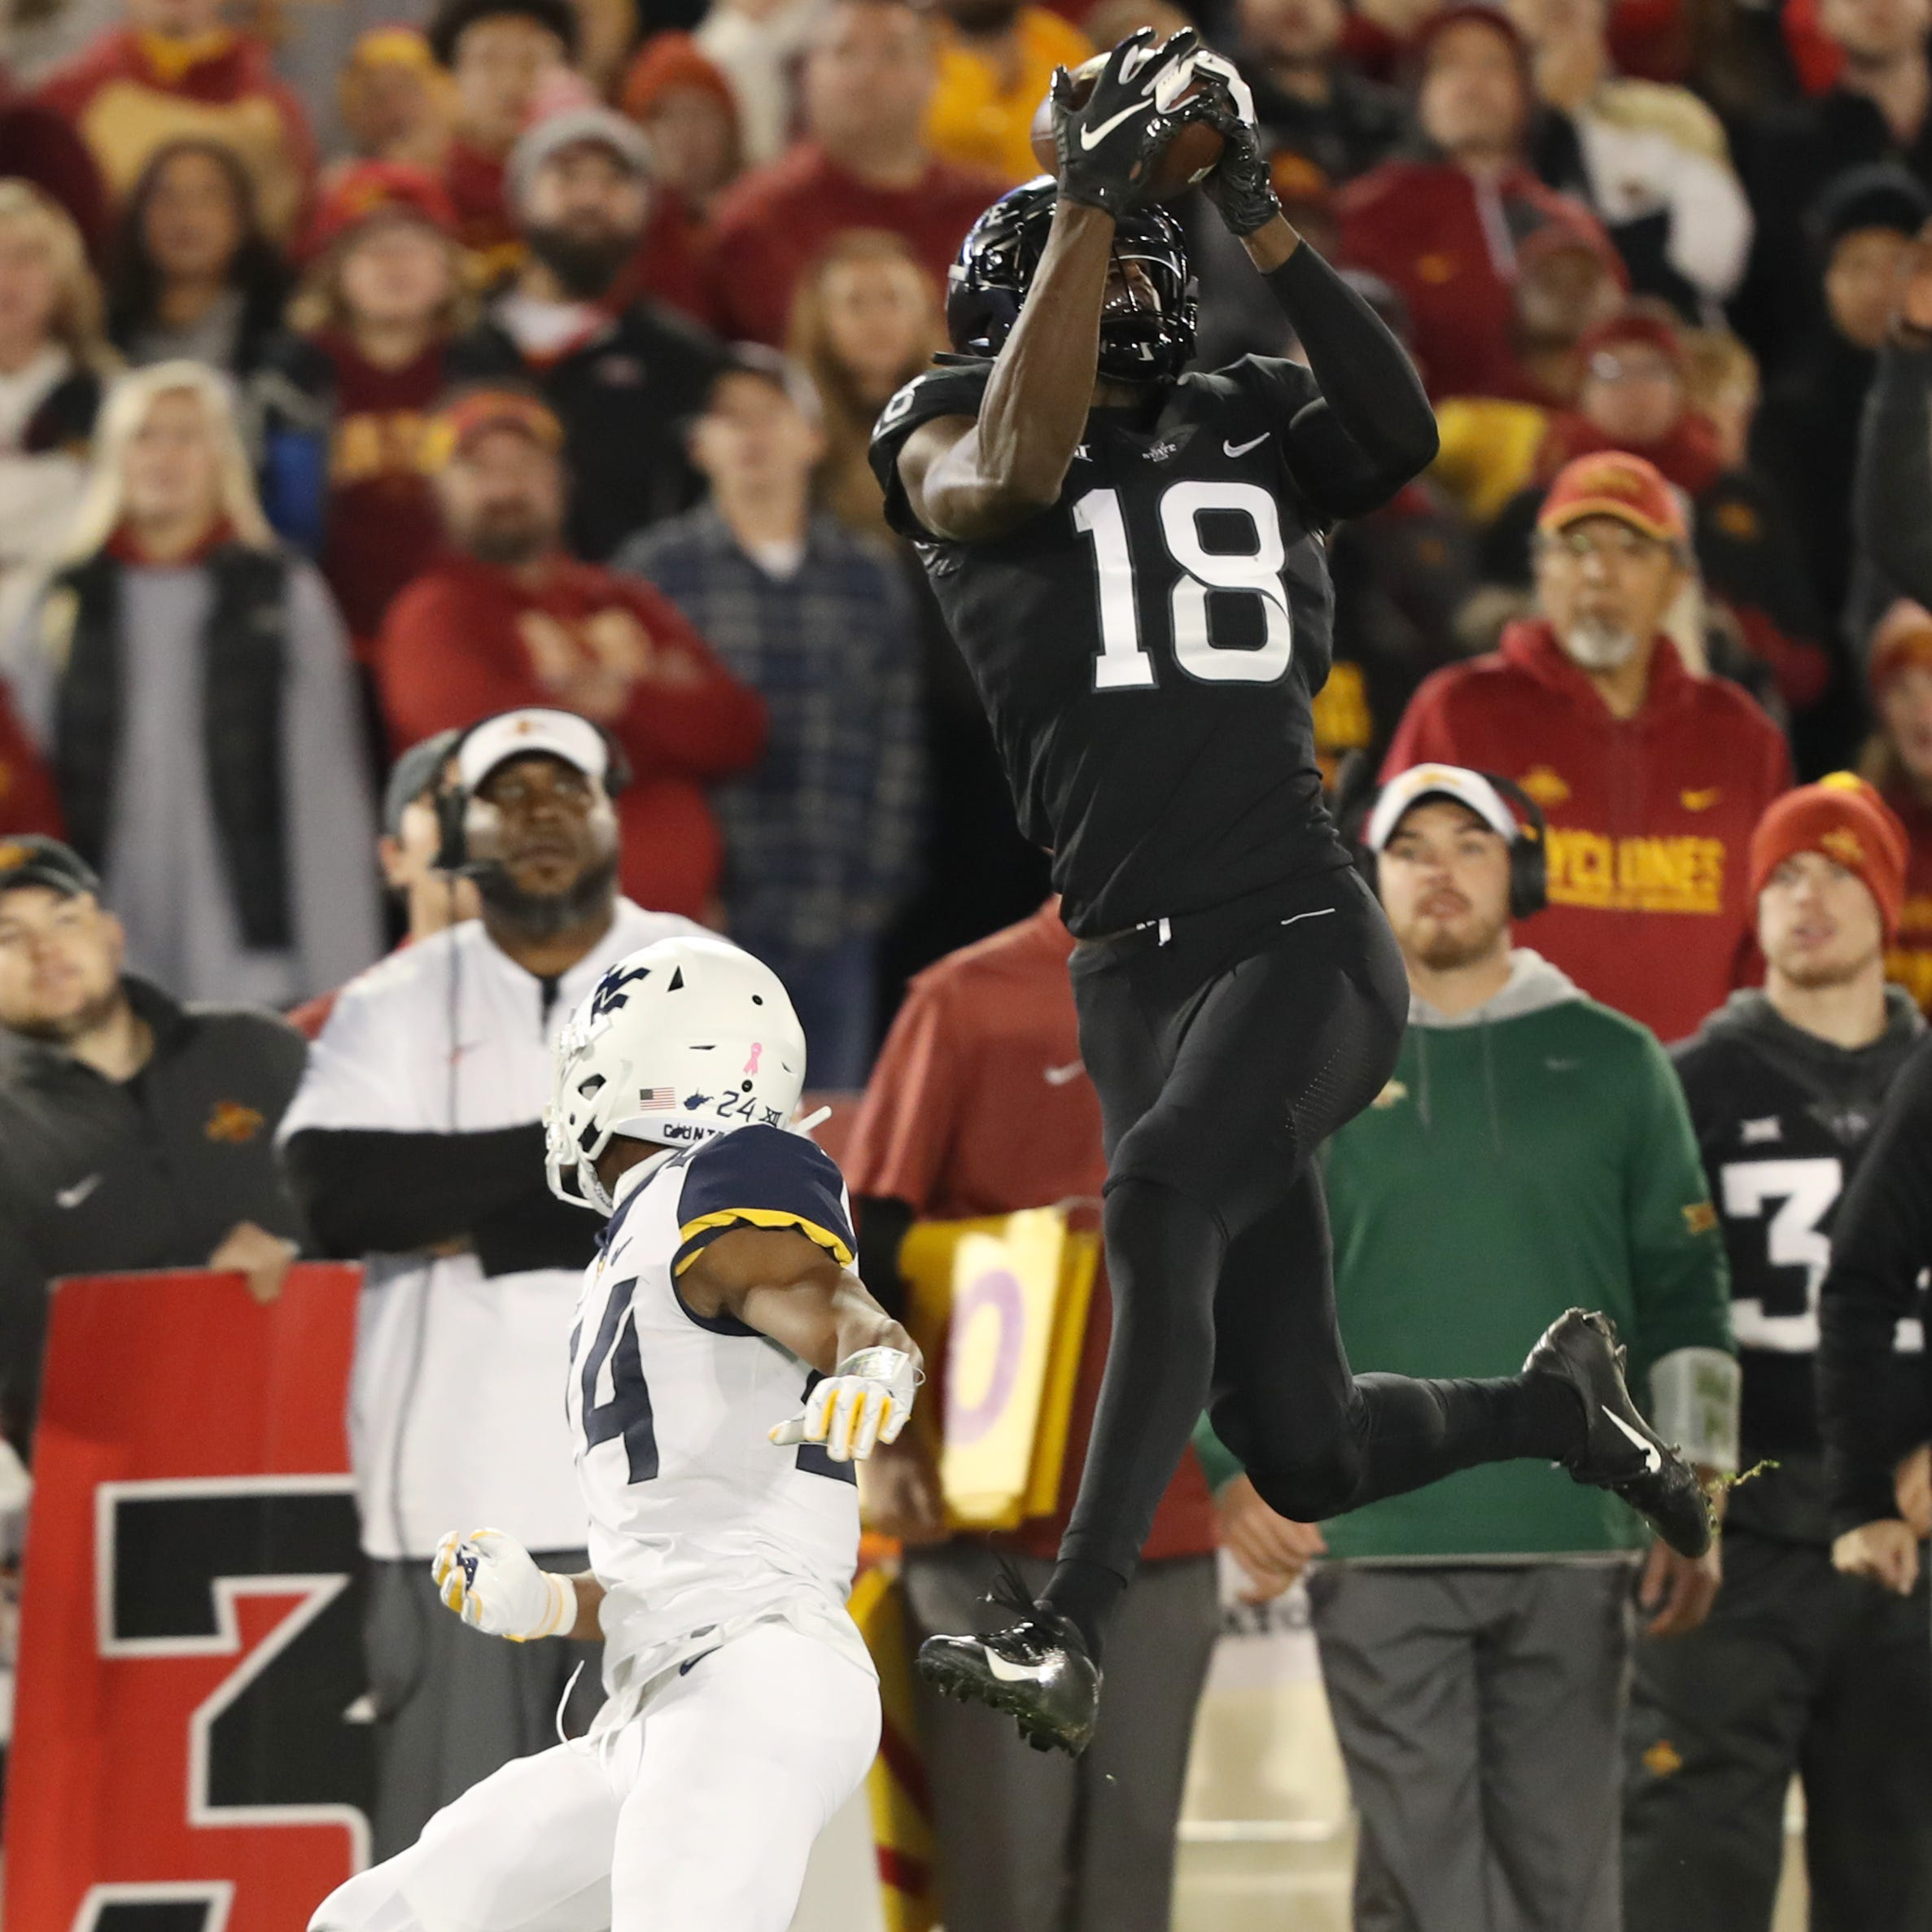 What's Hakeem Butler's NFL draft stock? We asked these experts about the Iowa State star